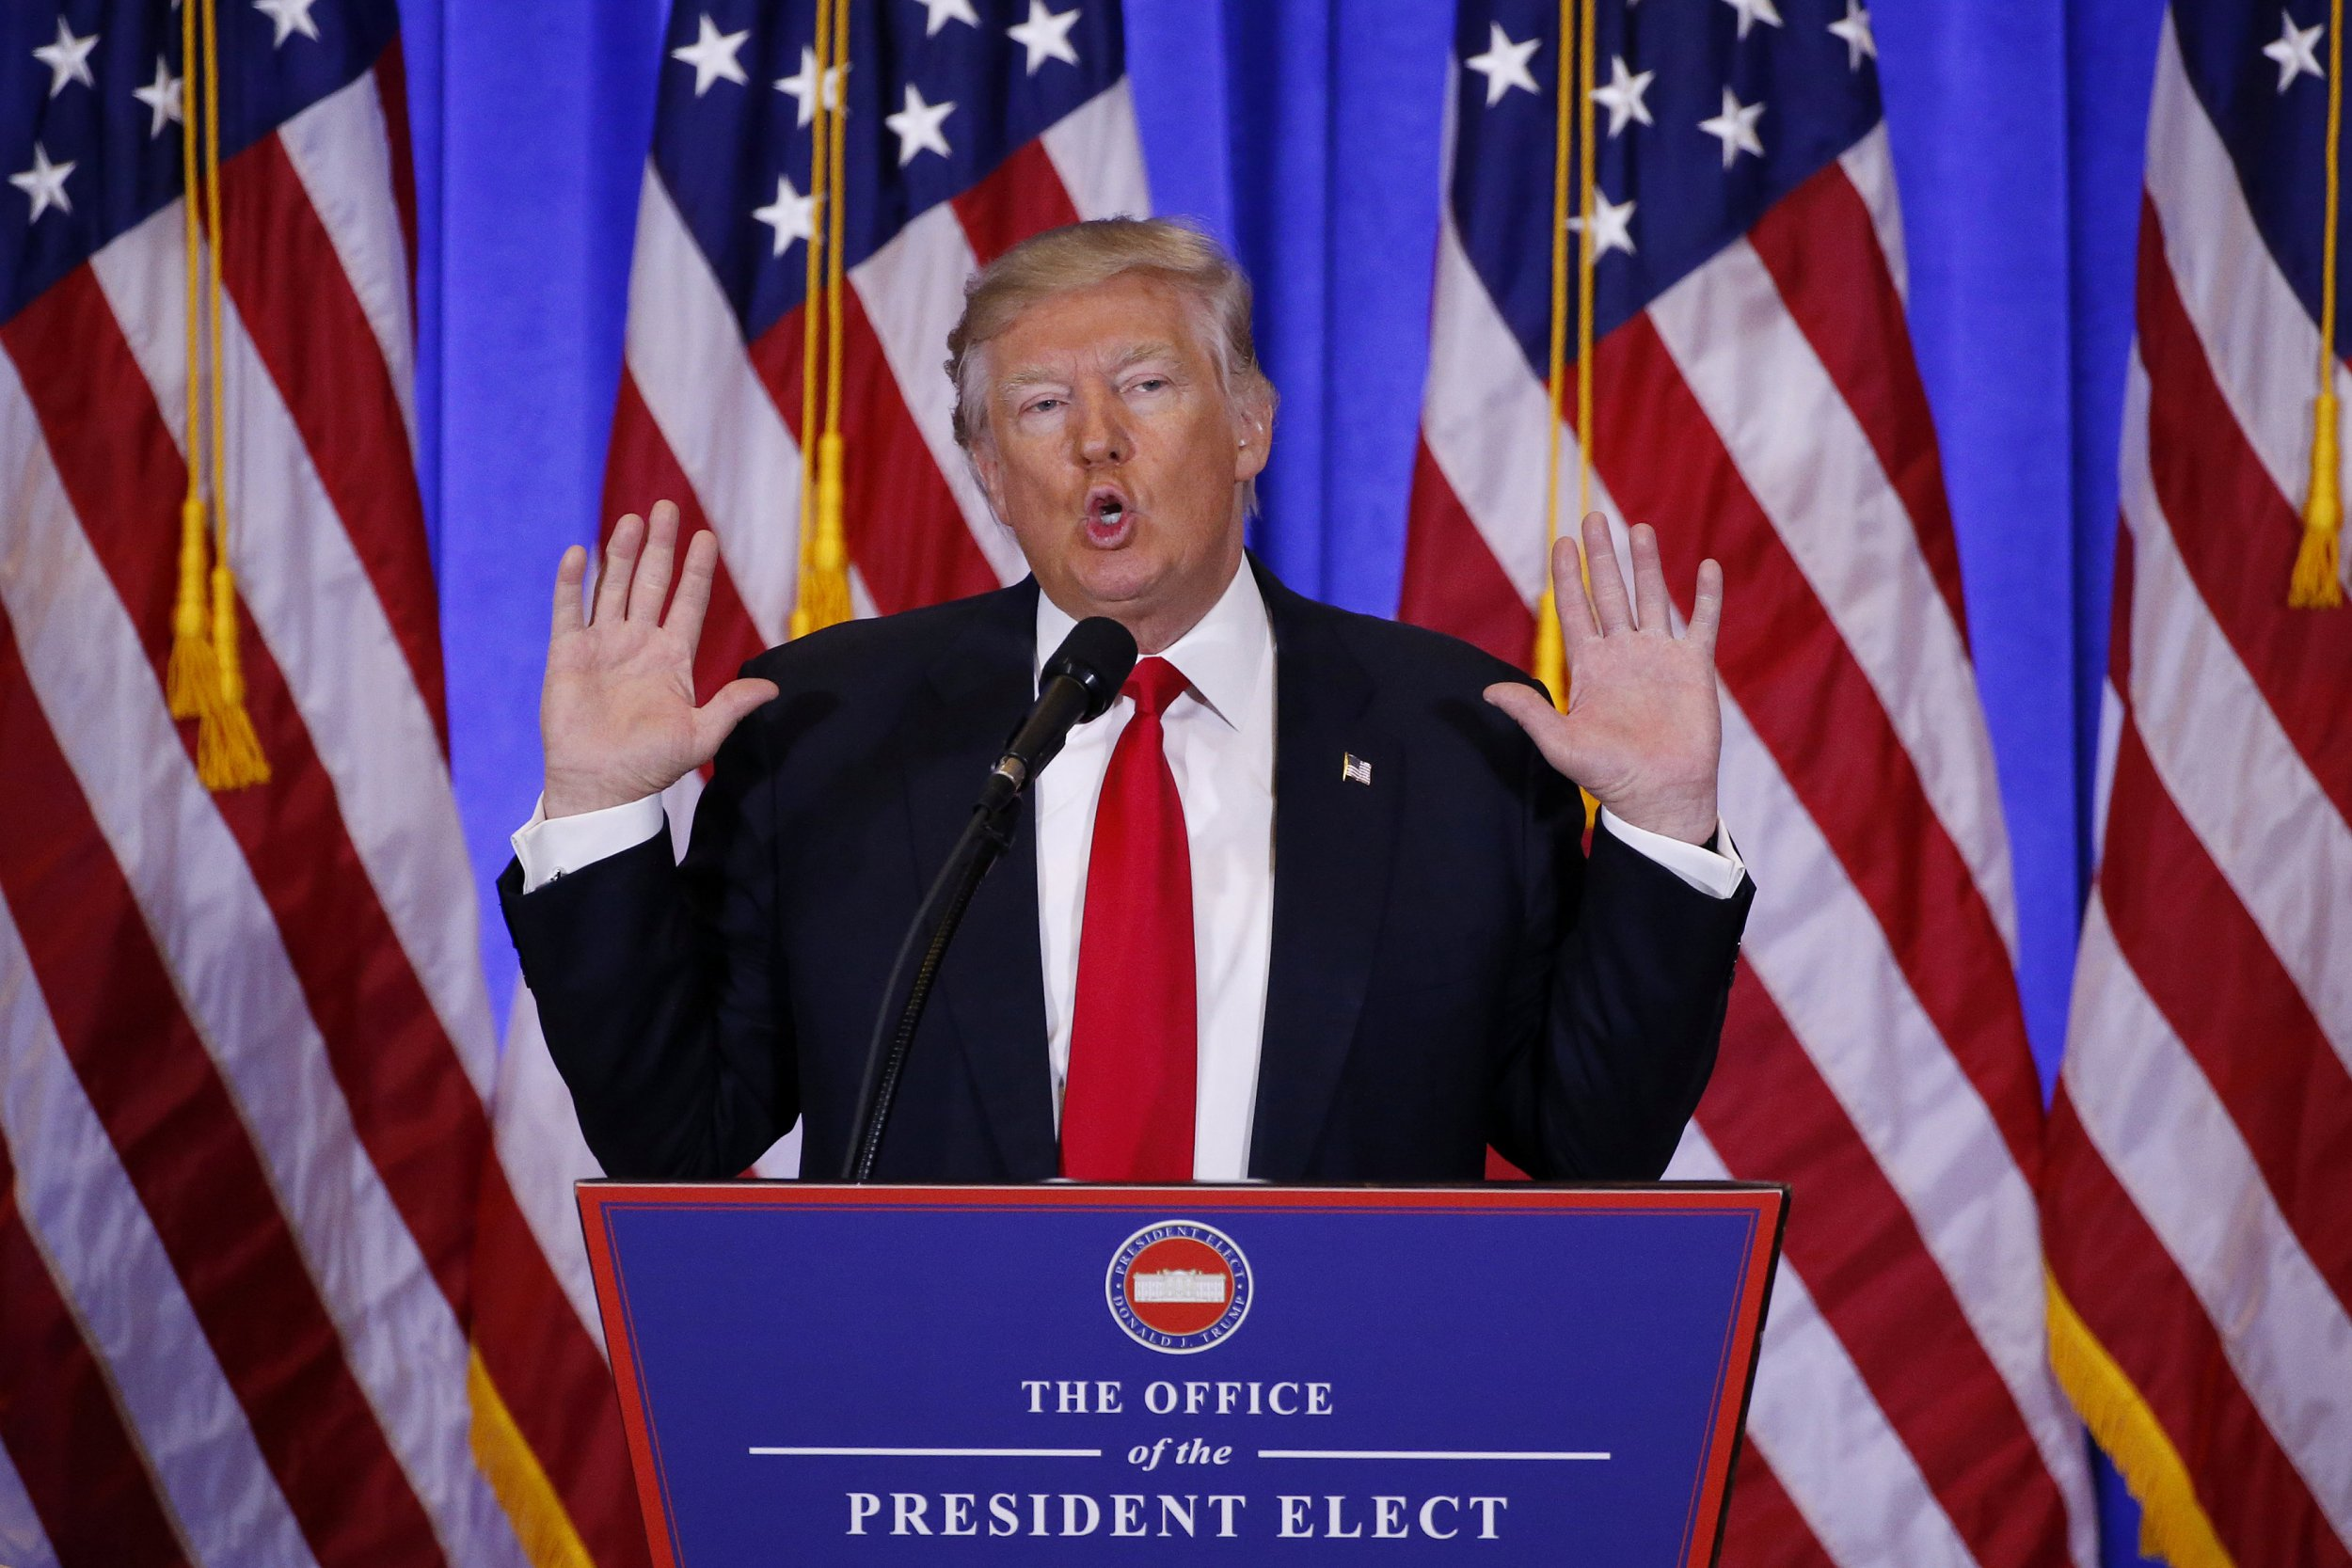 Donald Trump Dismisses Russia Reports as 'Fake News' During Bizarre Press Conference